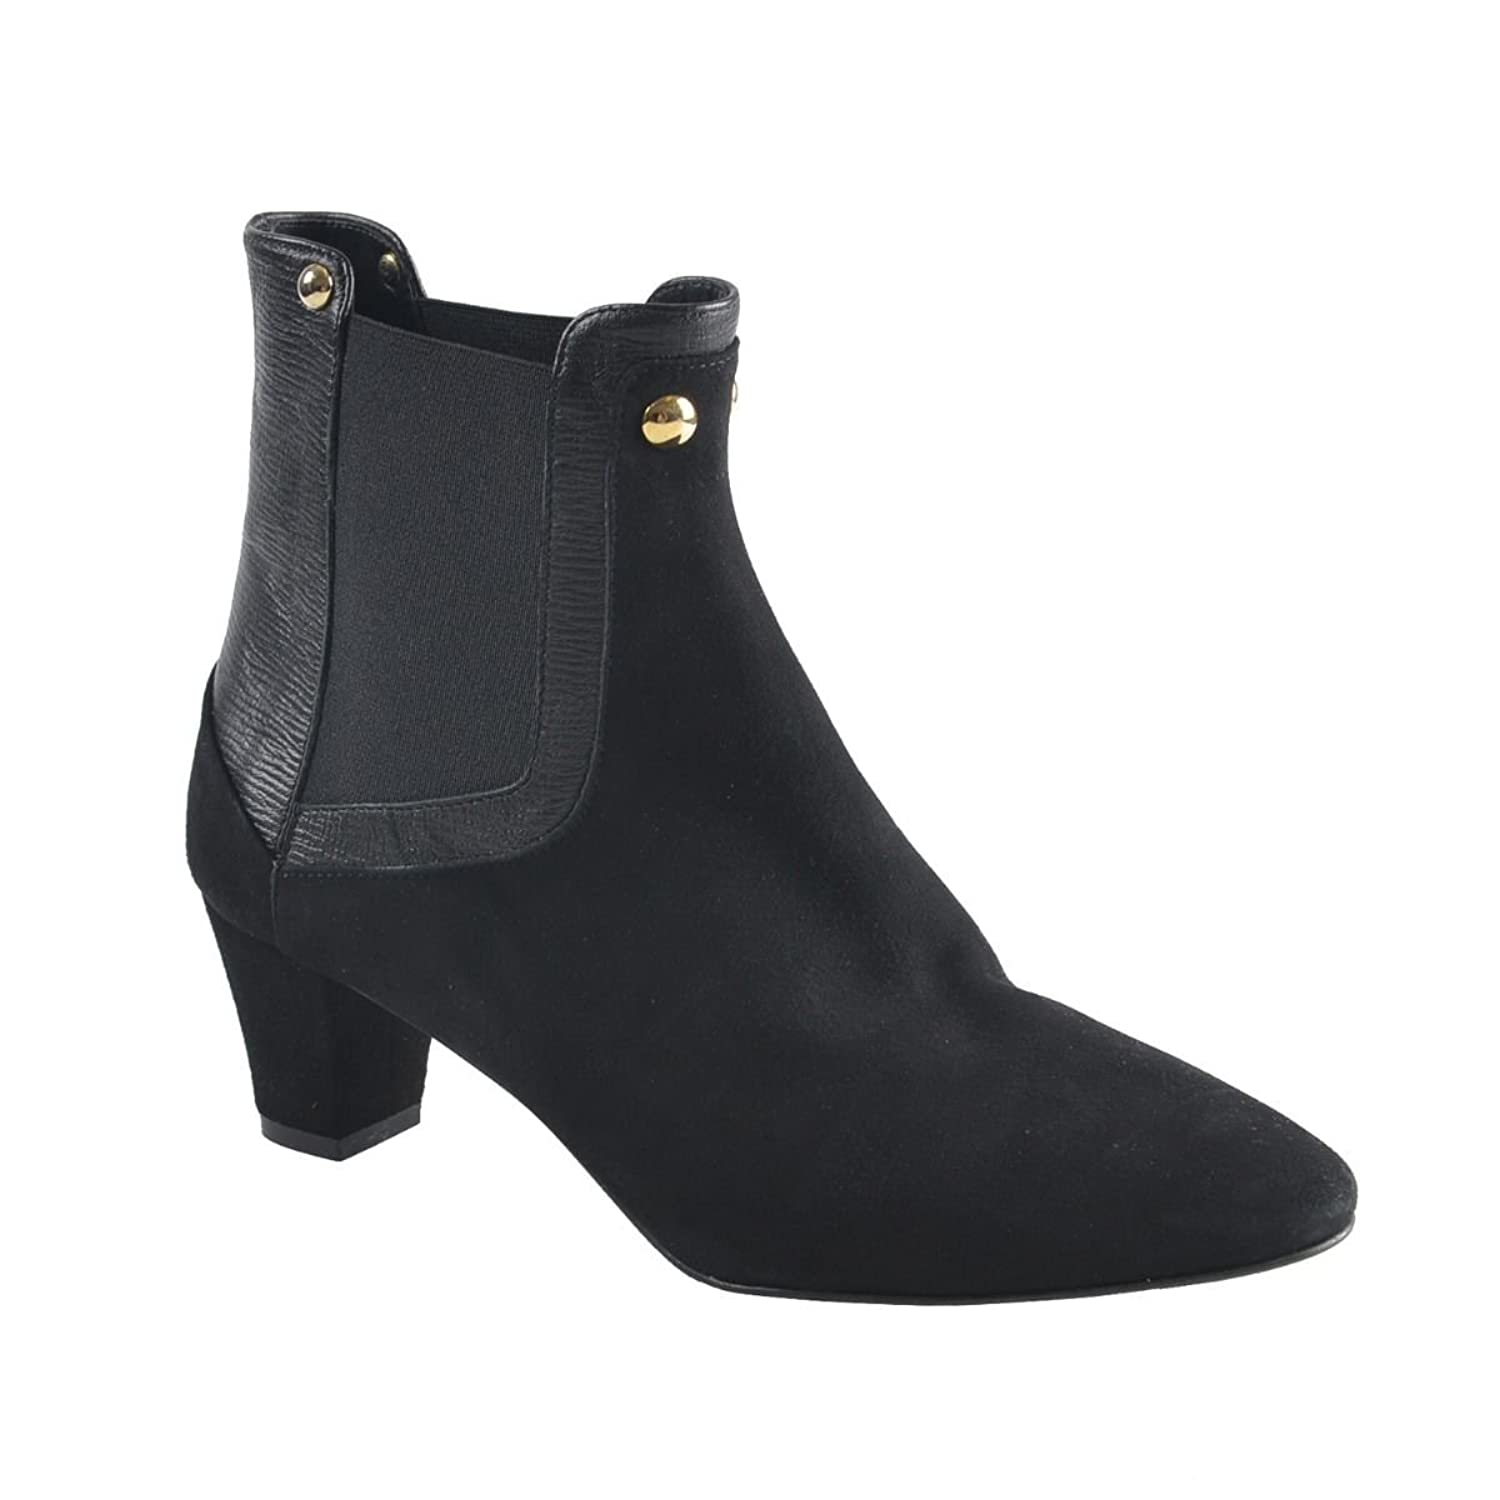 Just Cavalli Women's Black Suede Ankle Boots US 9 IT 39